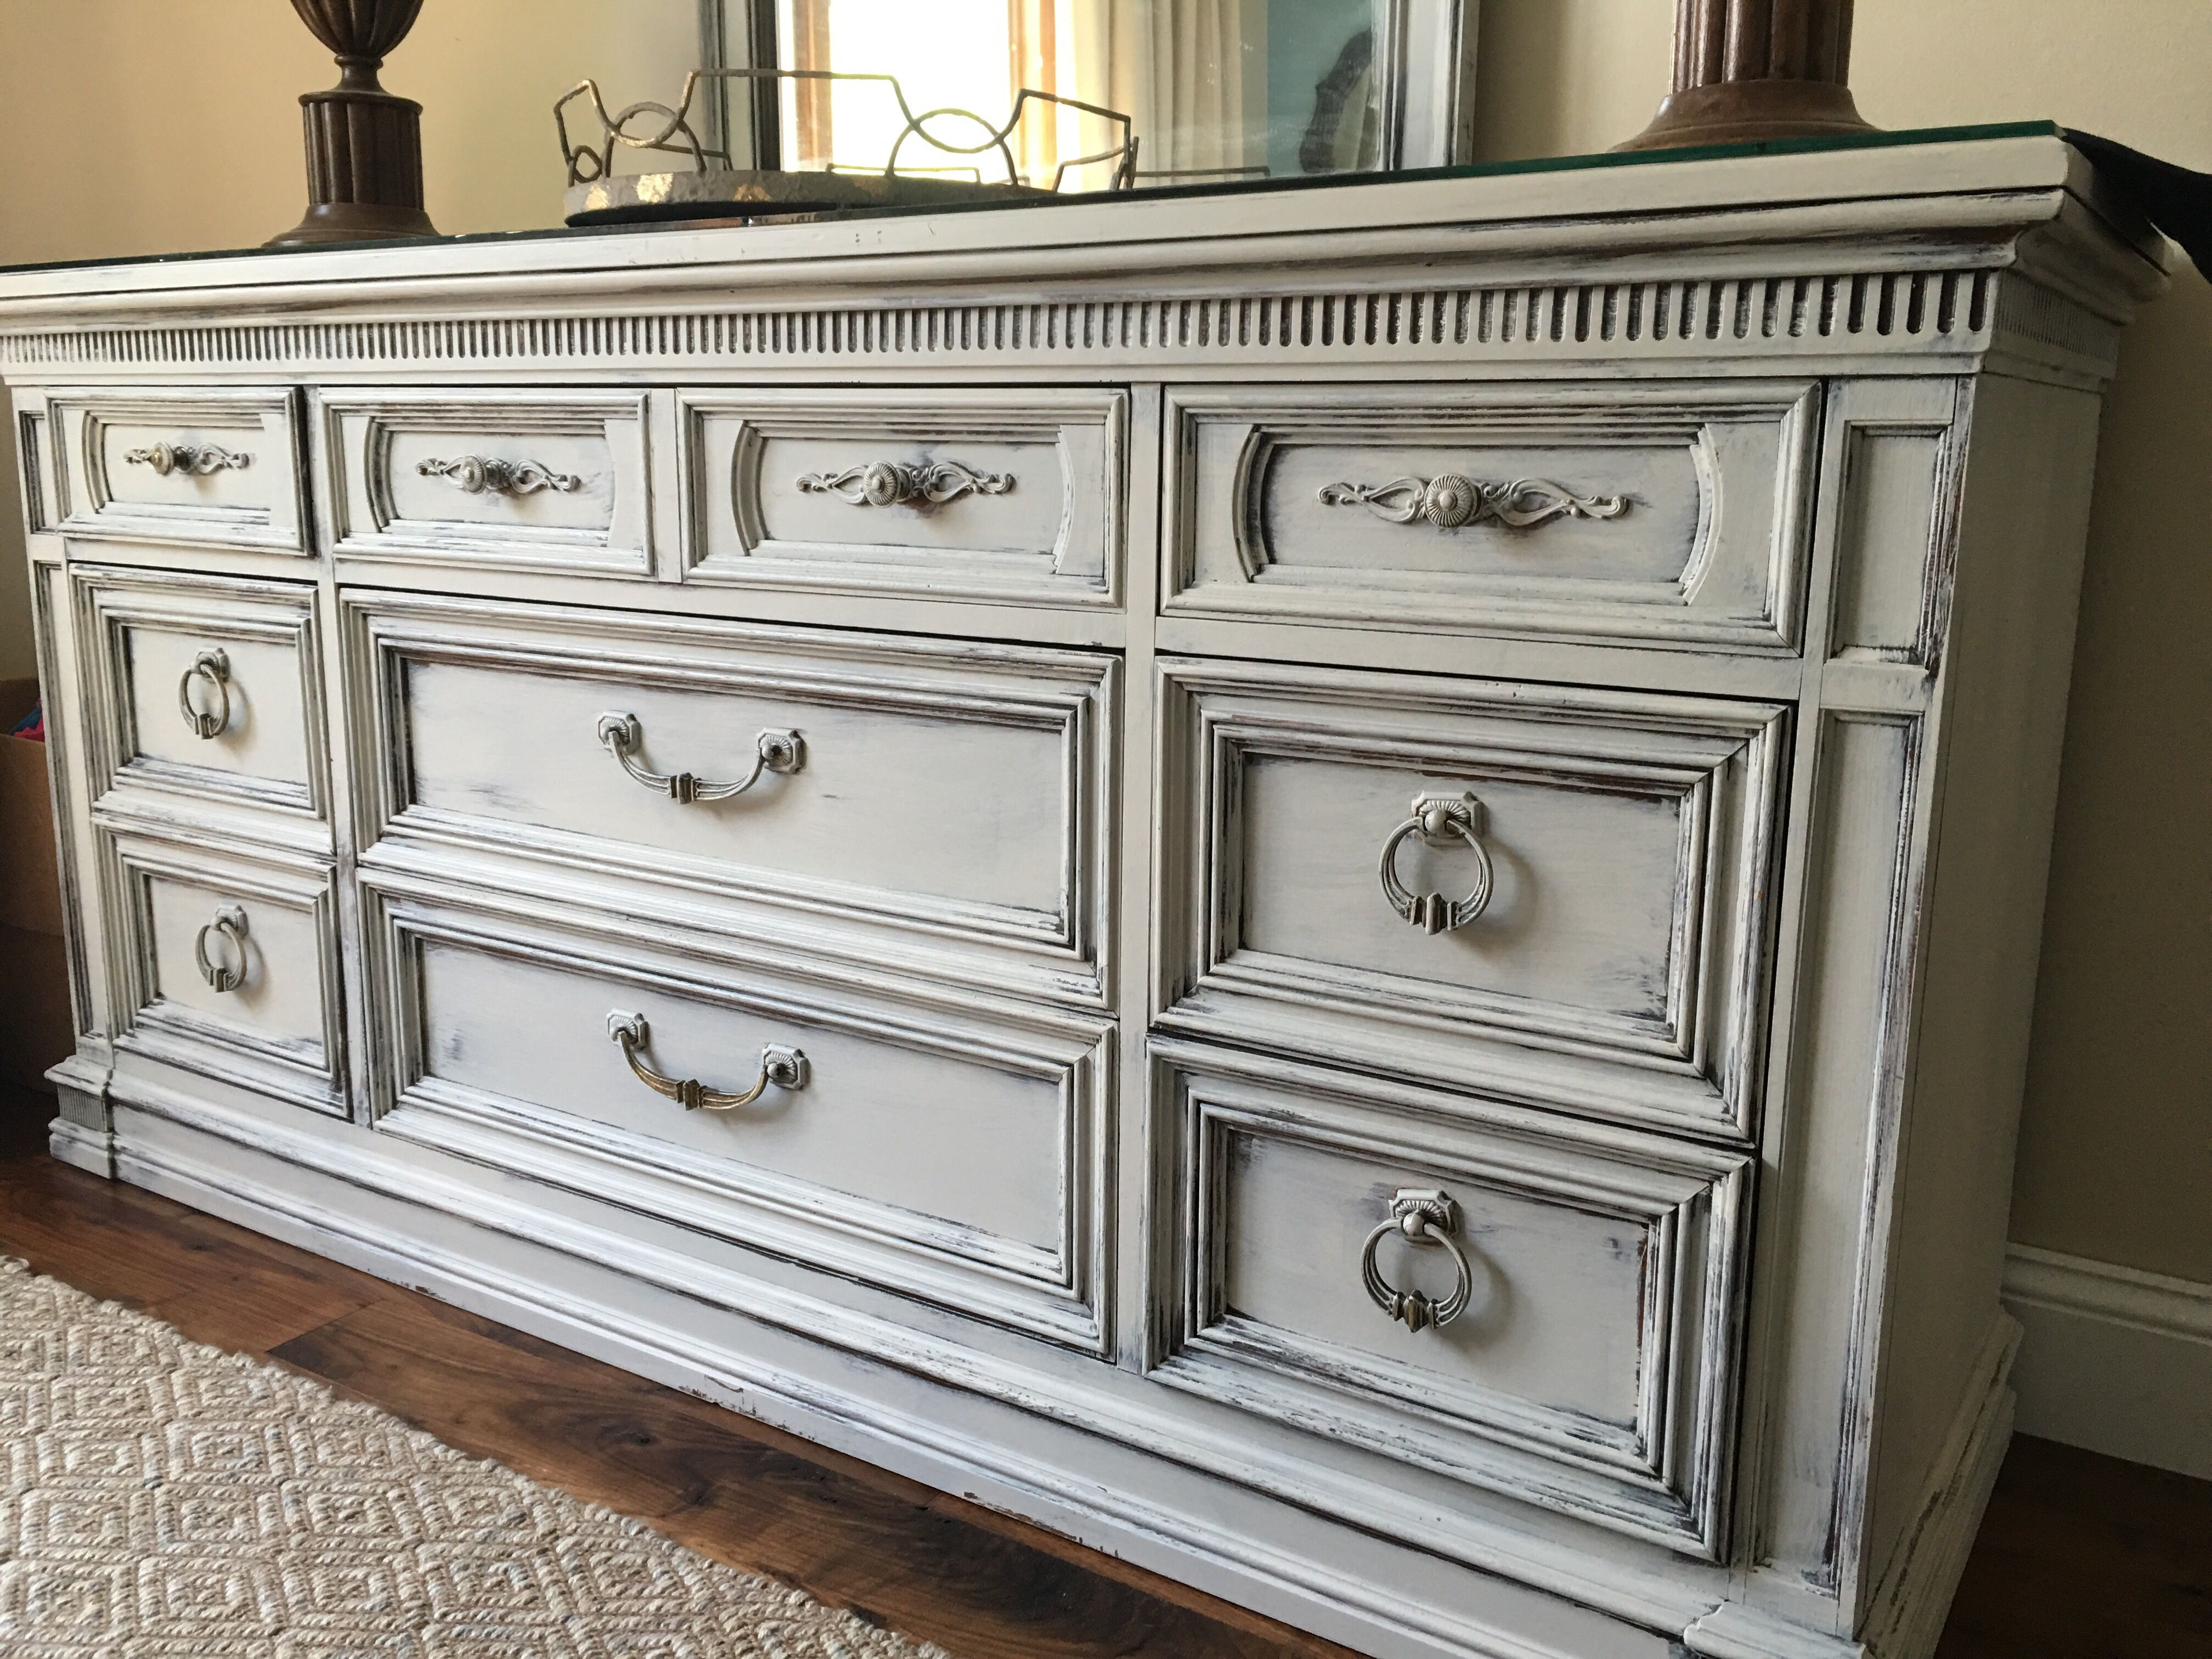 Thomasville furniture makeover Follow me on Instagram